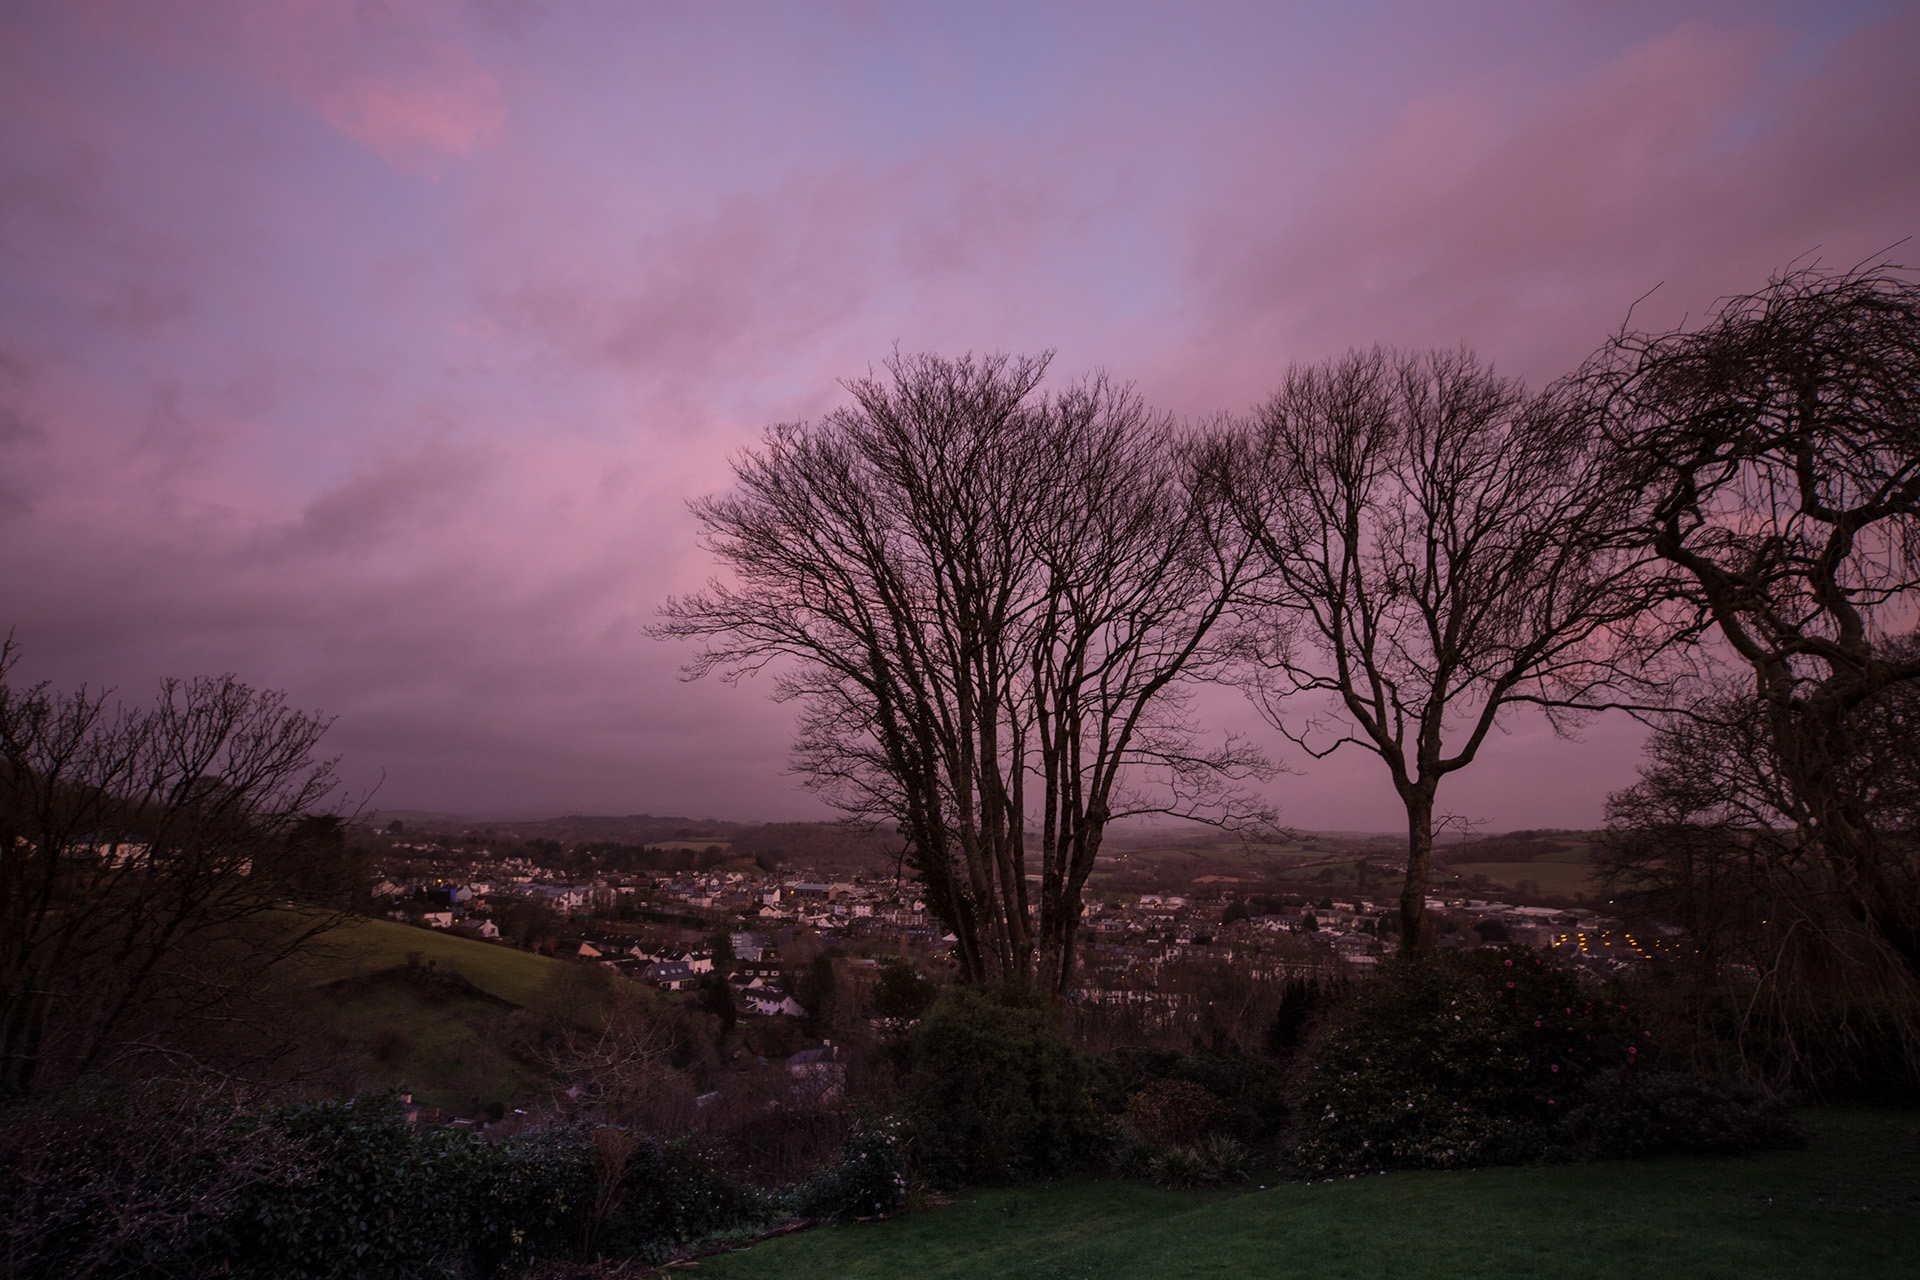 Sunrise set off a stormy sky above Totnes in Devon, England. Dartmoor, which can be seen in the far distance, often has a strong influence upon the weather moving in from the Atlantic, creating a barrier which invites precipitation.